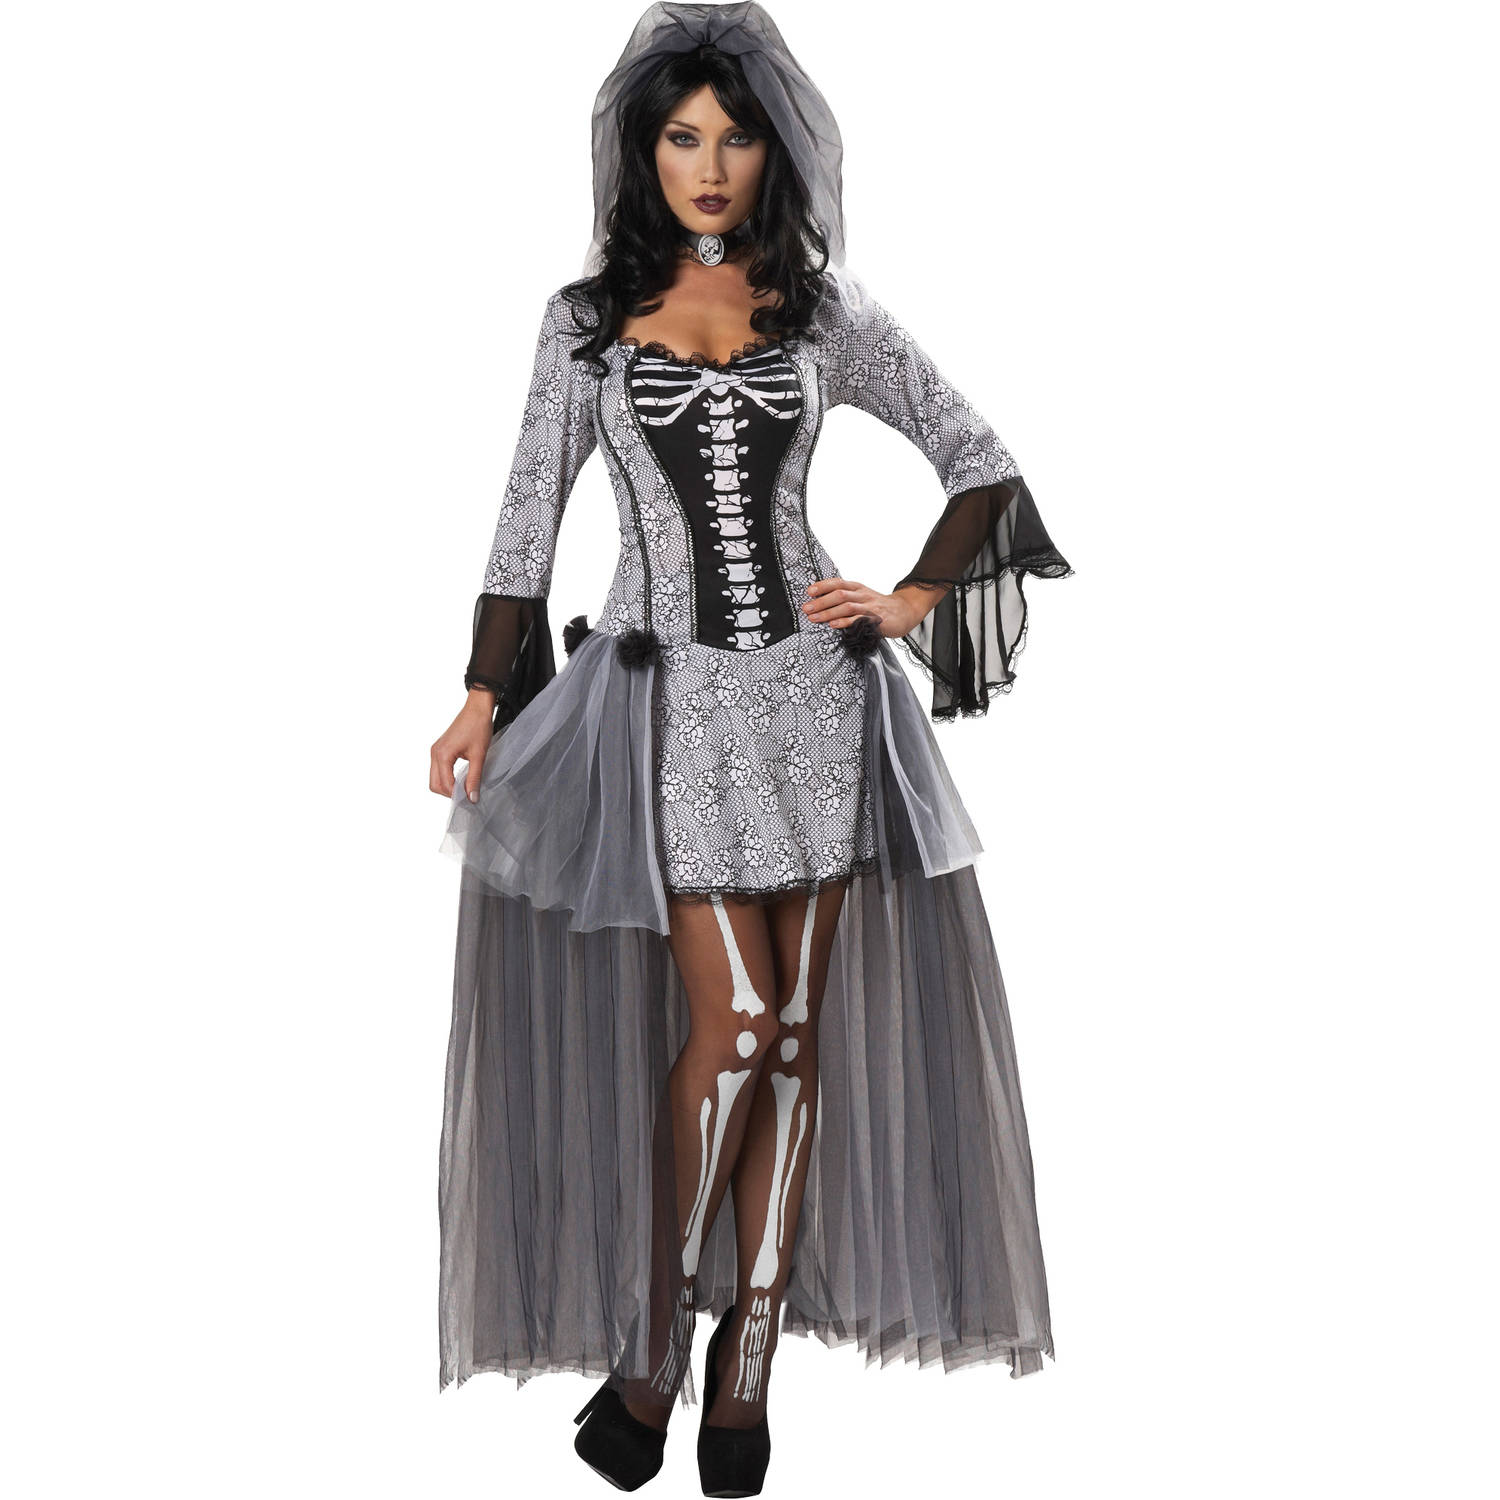 Skeleton Bride Women's Adult Halloween Costume